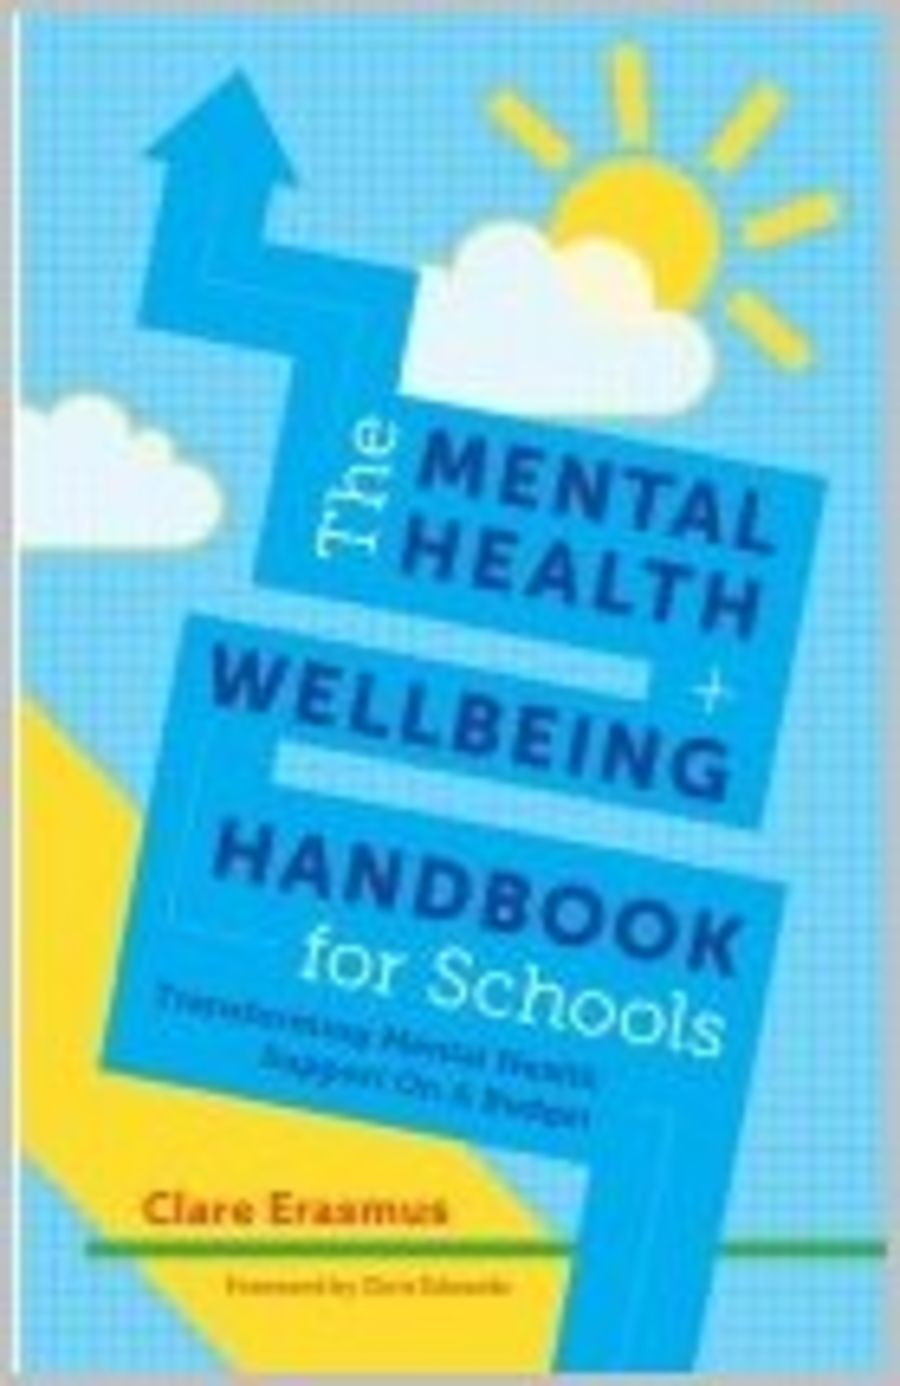 The Mental Health and Wellbeing Handbook for Schools